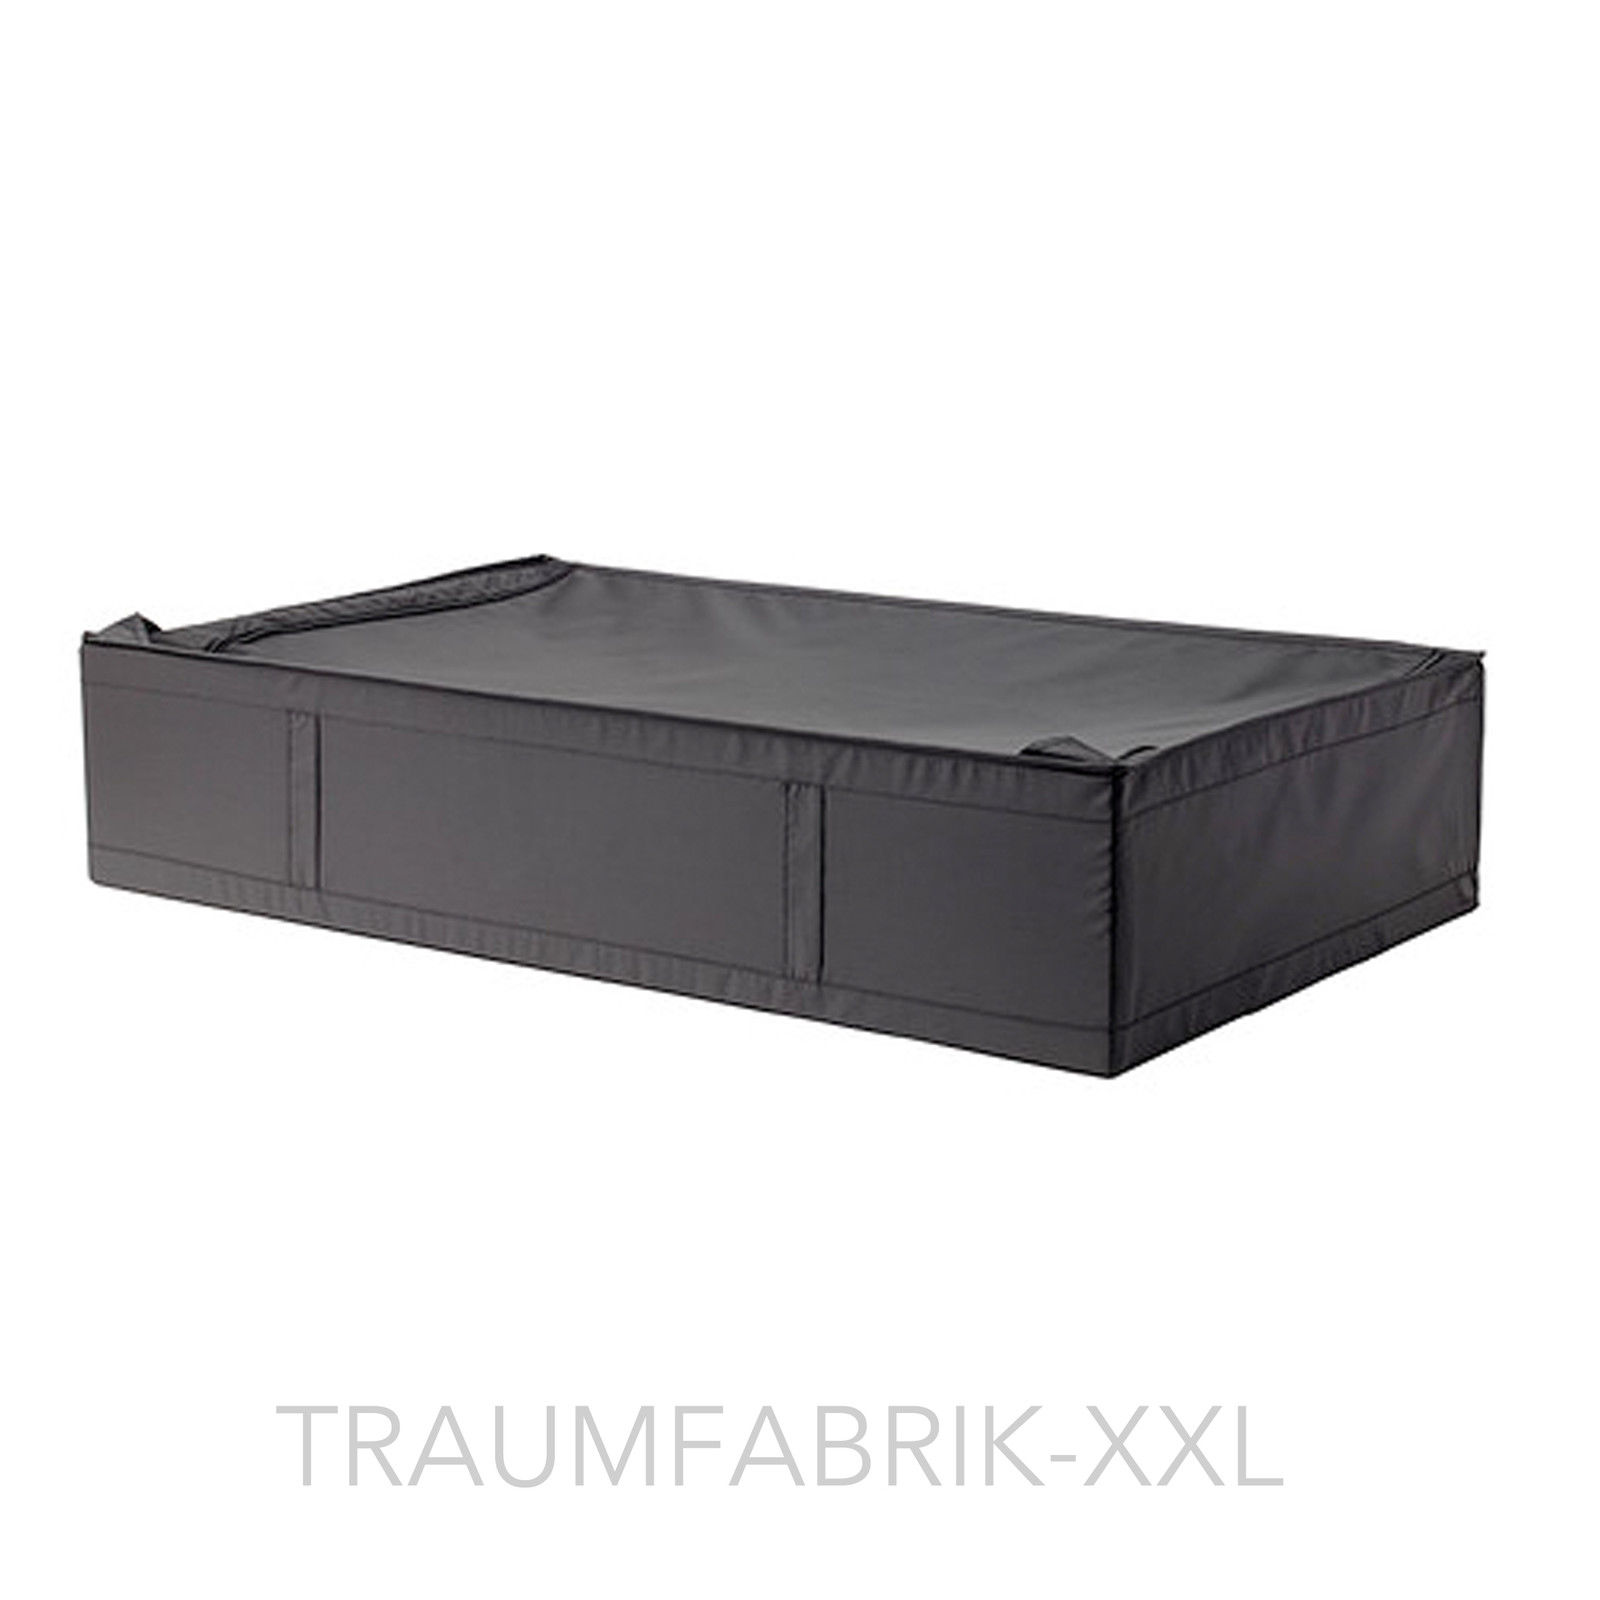 aufbewahrungsbox 93x55x19cm aufbewahrung bettdecke box tasche regalbox schwarz traumfabrik xxl. Black Bedroom Furniture Sets. Home Design Ideas